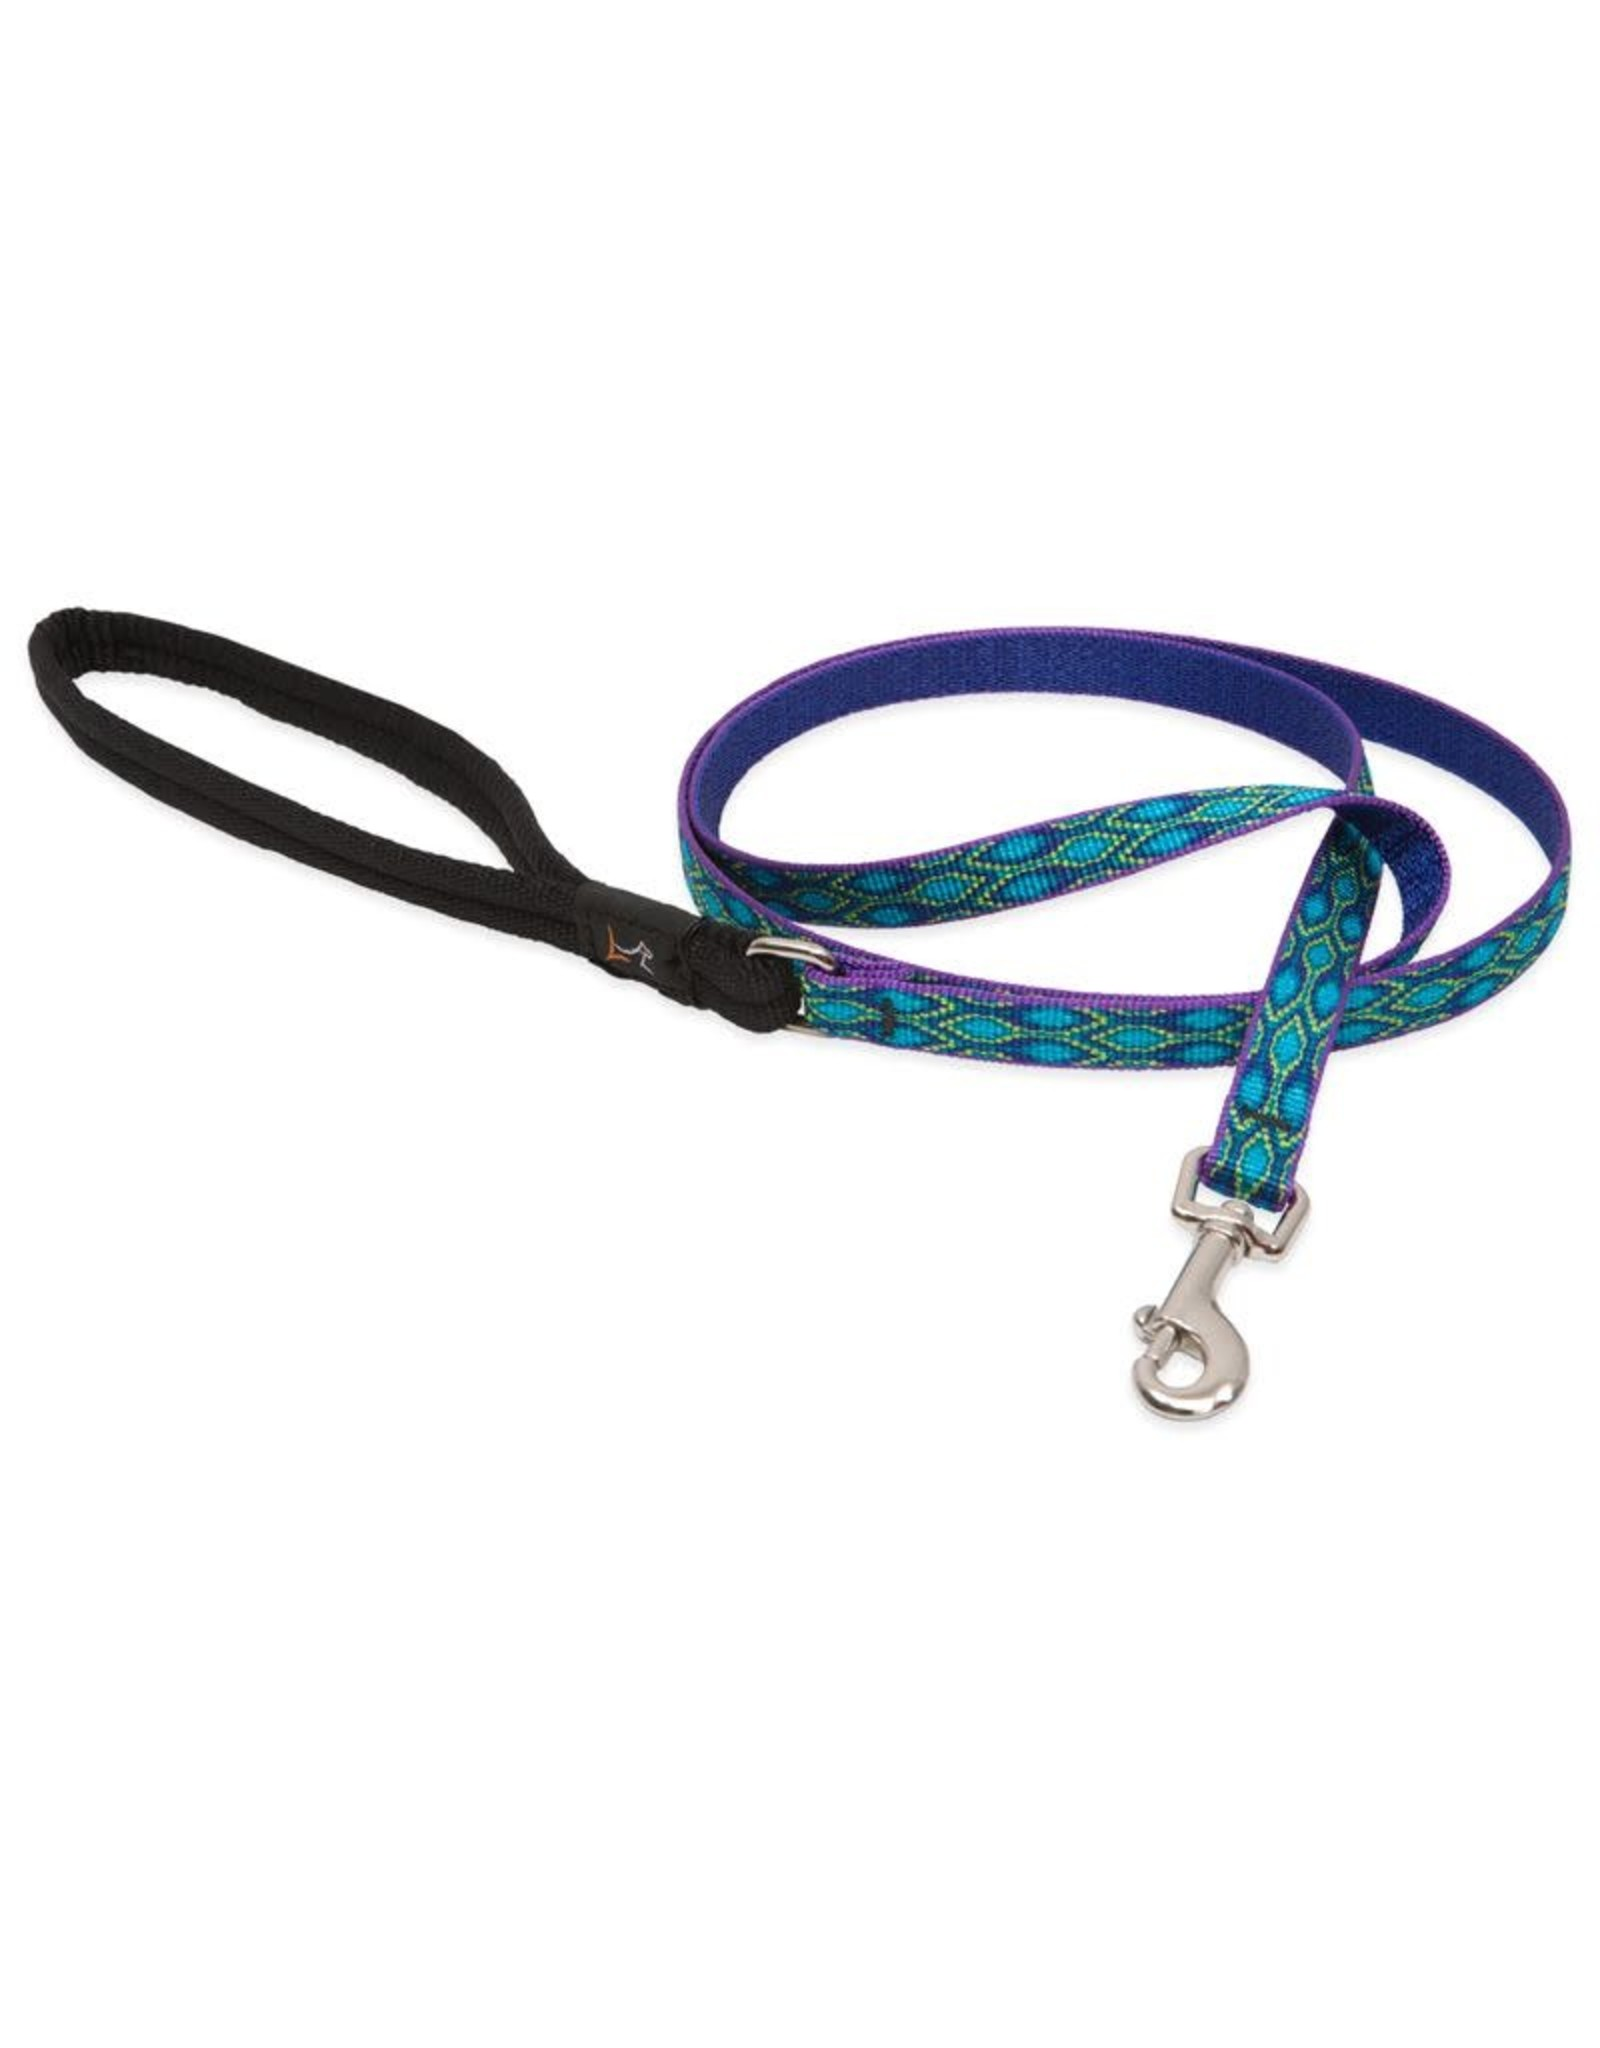 Lupine Lupine Rain Song Leash: 1 in wide, 6 ft